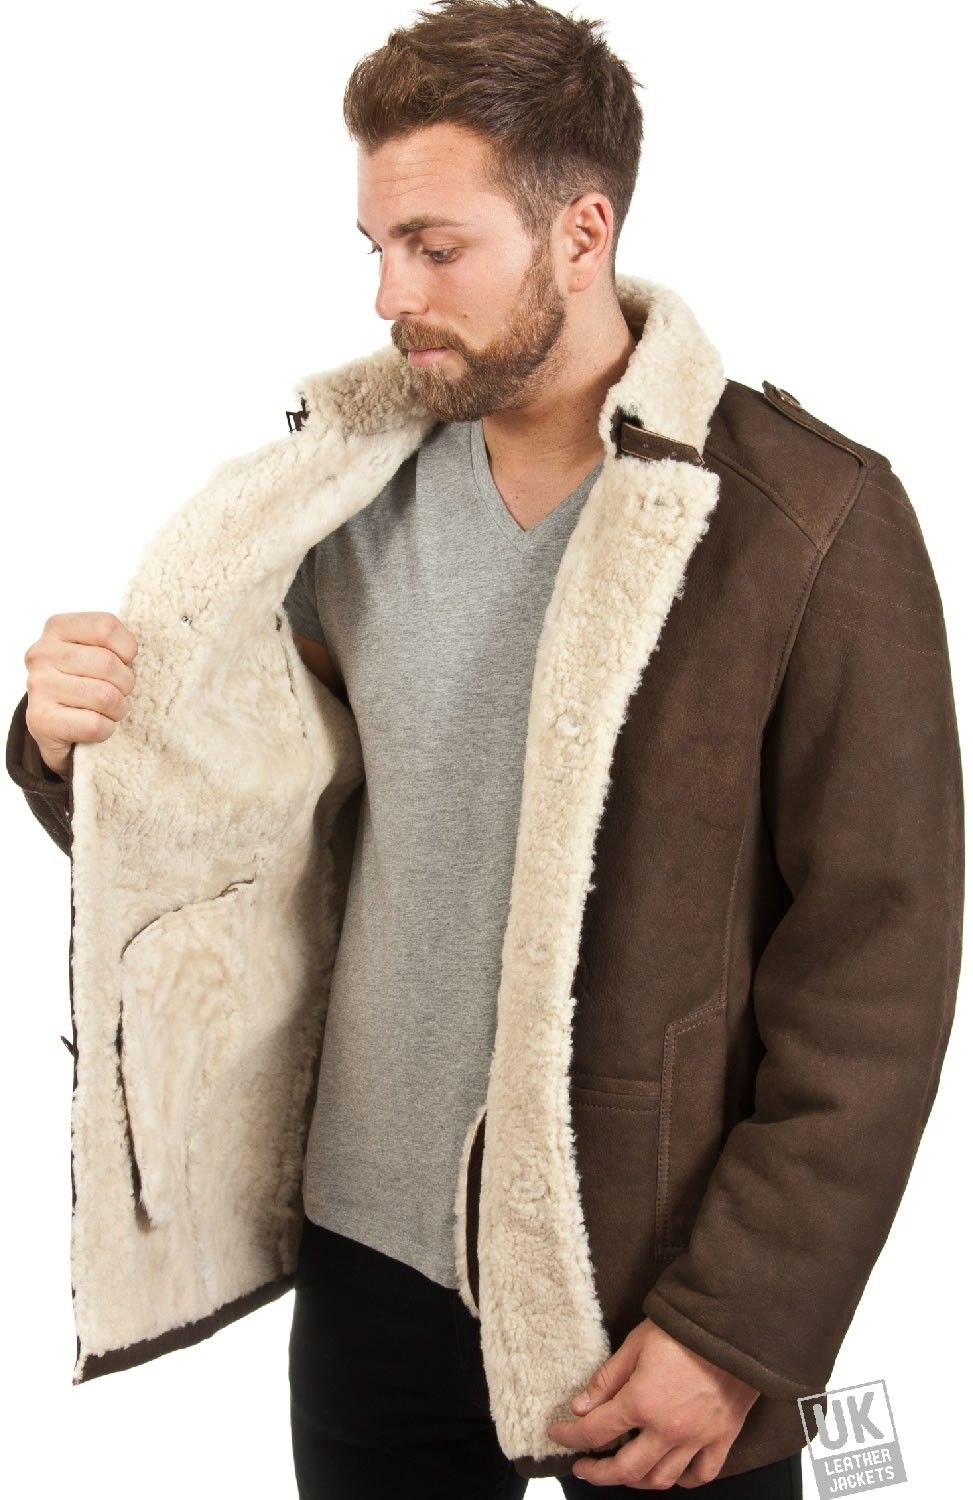 mens sheepskin jacket - Google Search | gear wish list non-film ...